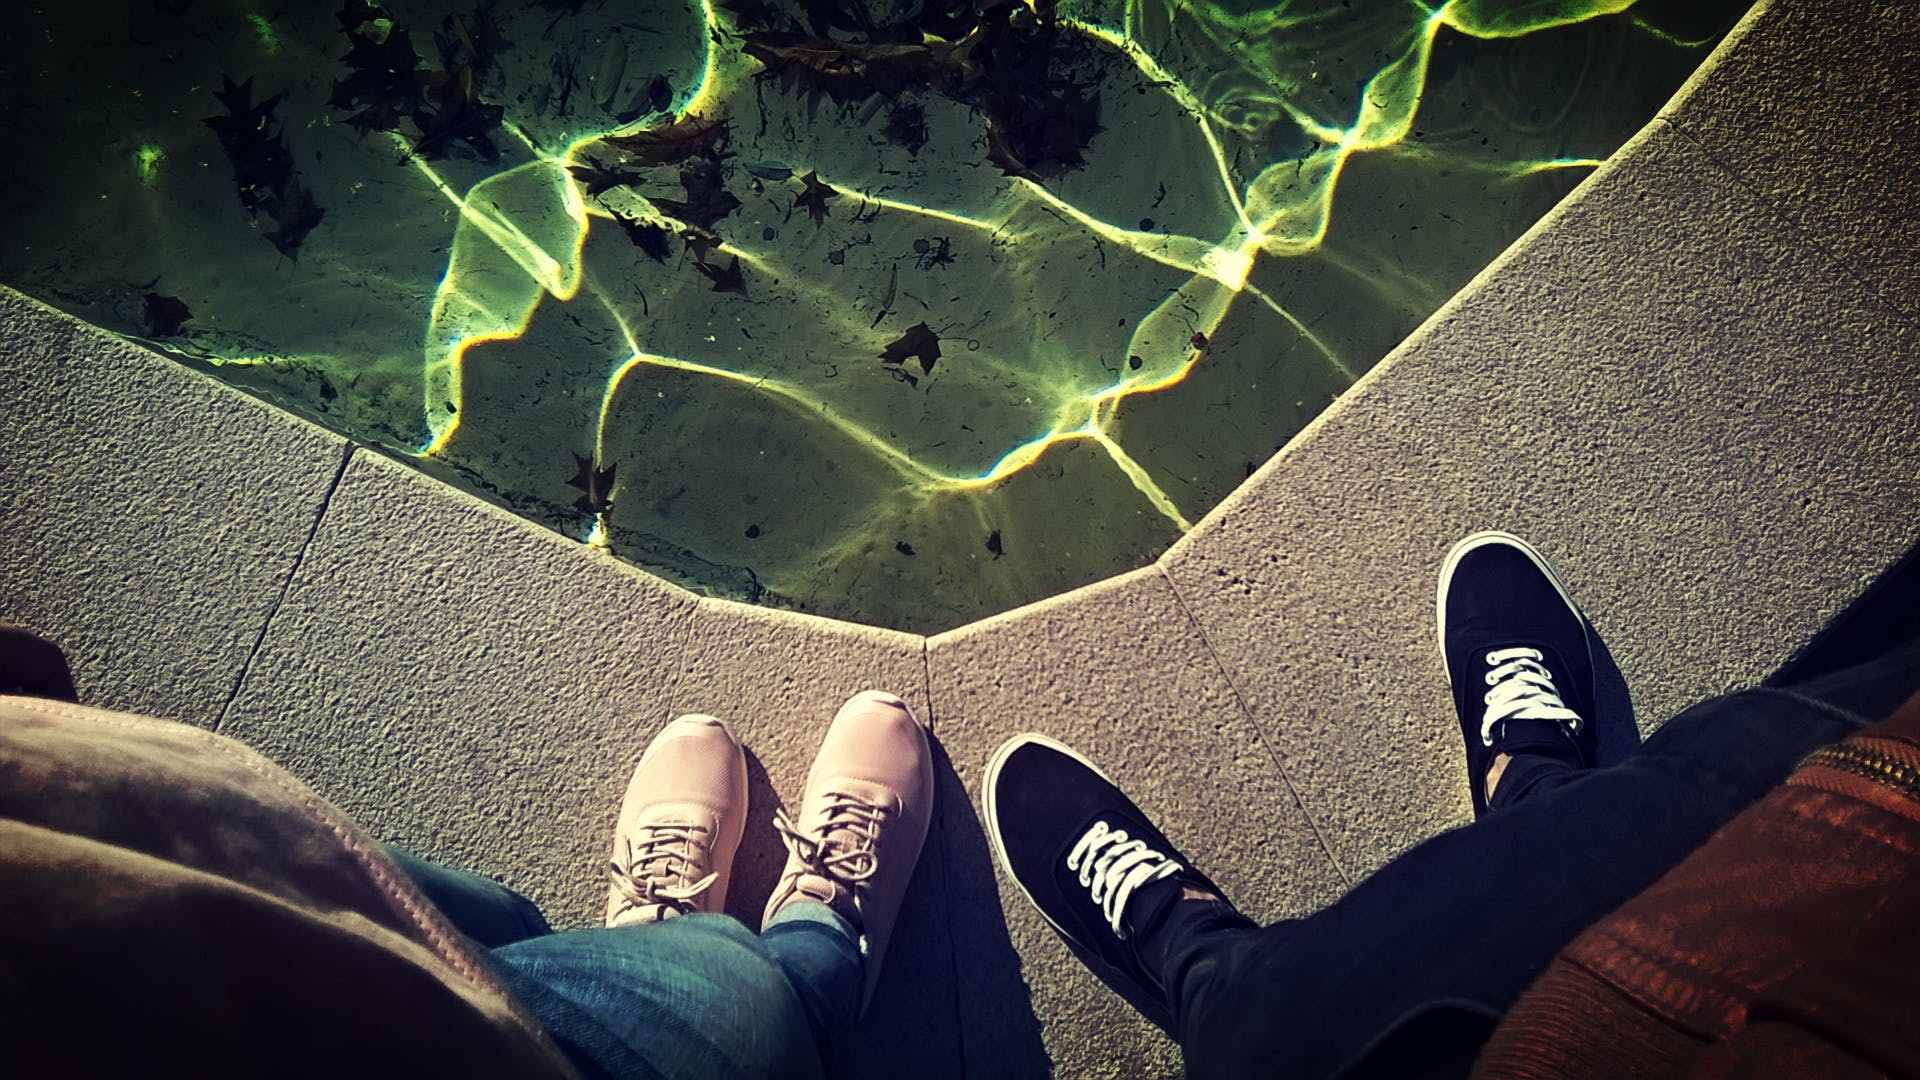 Two Person Standing Near Body of Water Taking Picture of Shoes